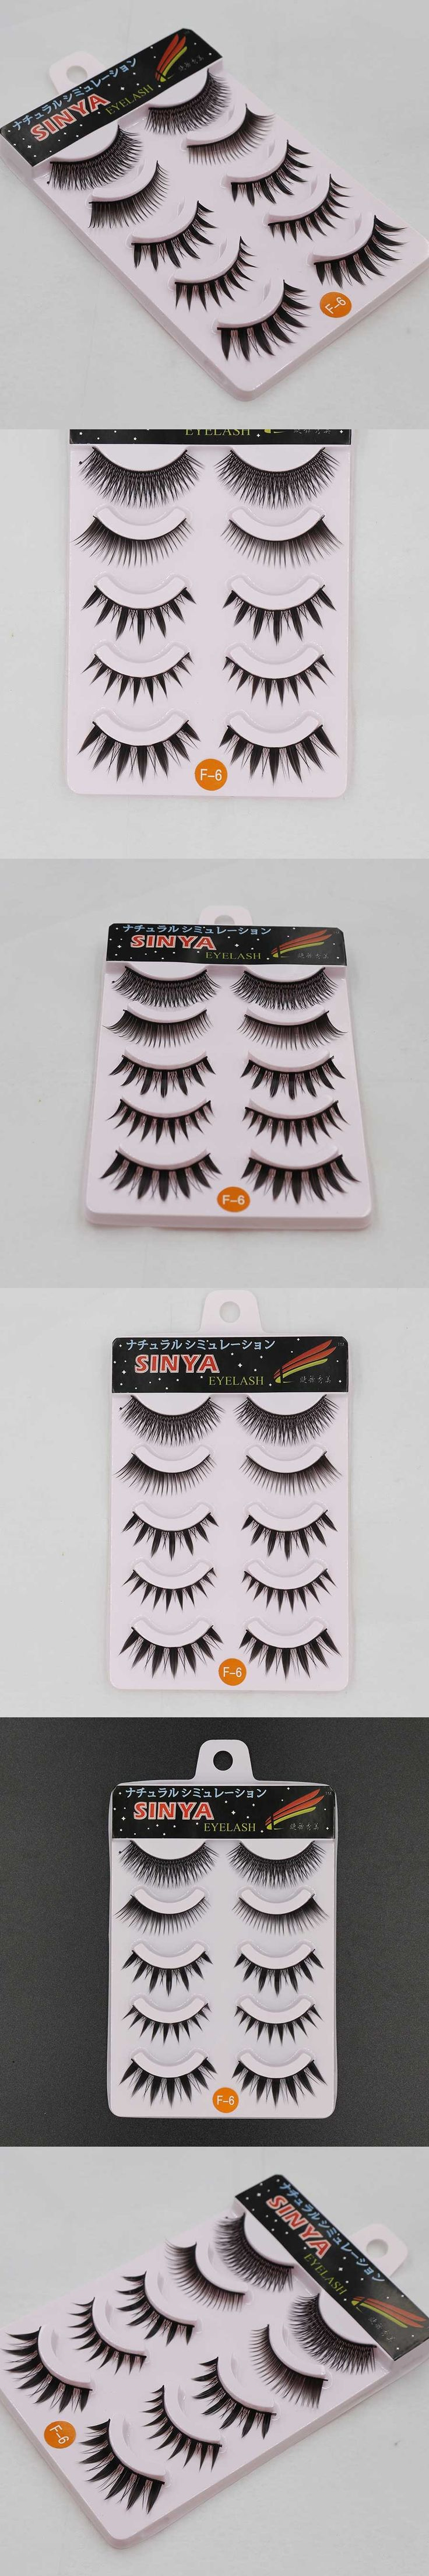 5 Pairs Crisscross Thick 3D Mink False Eyelashes Extension Eye Lashes Cilios Posticos Naturais Faux Cils Nep Wimpers Wimpern F-6